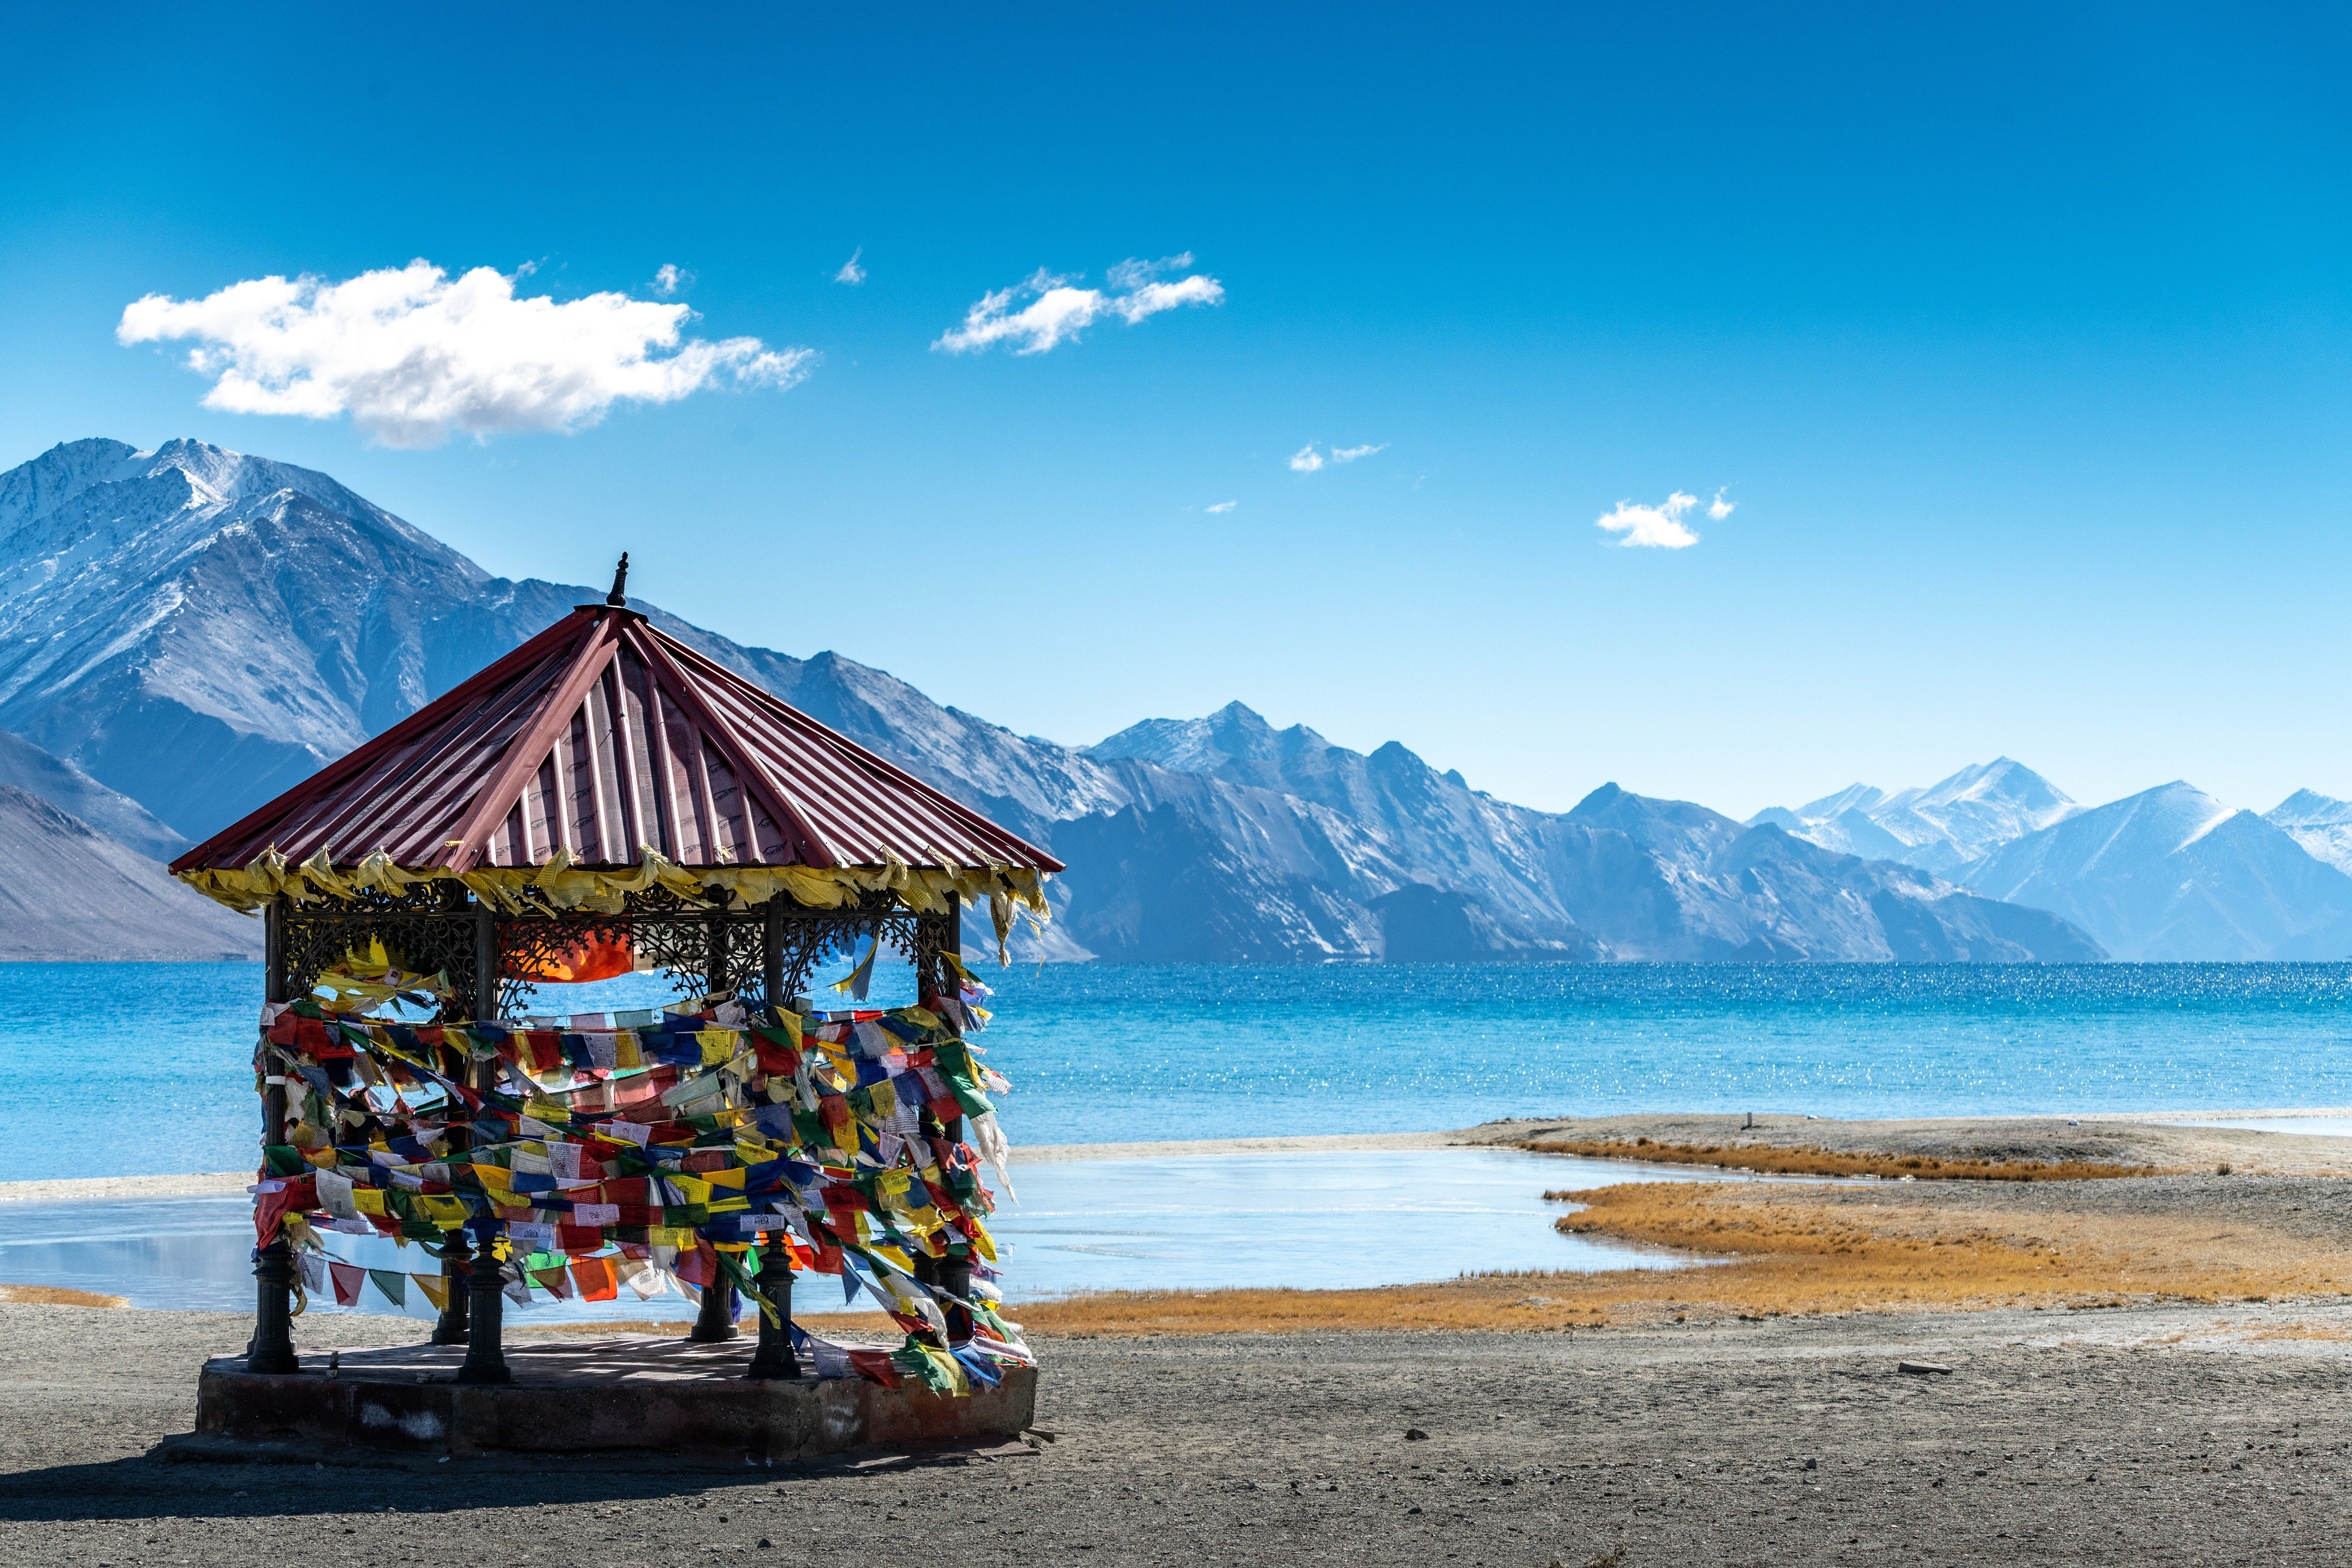 Ladakh: the good, bad and ugly sides to India's 'Little